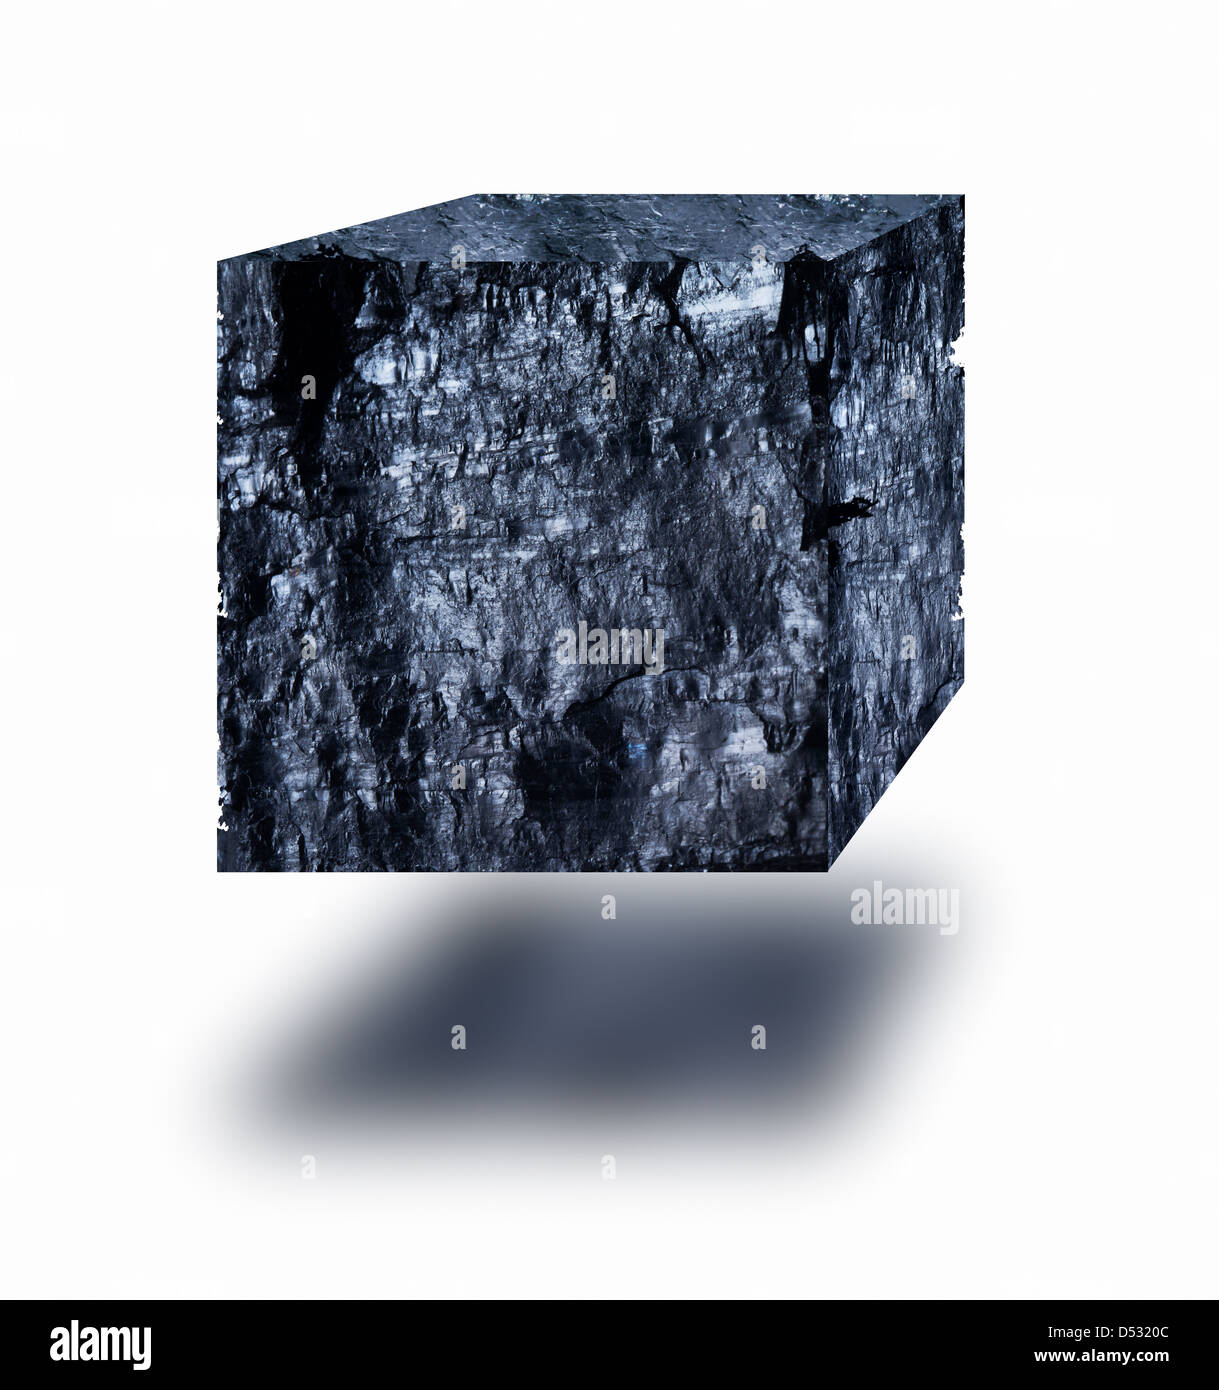 Coal cube floating in air over white background - Stock Image